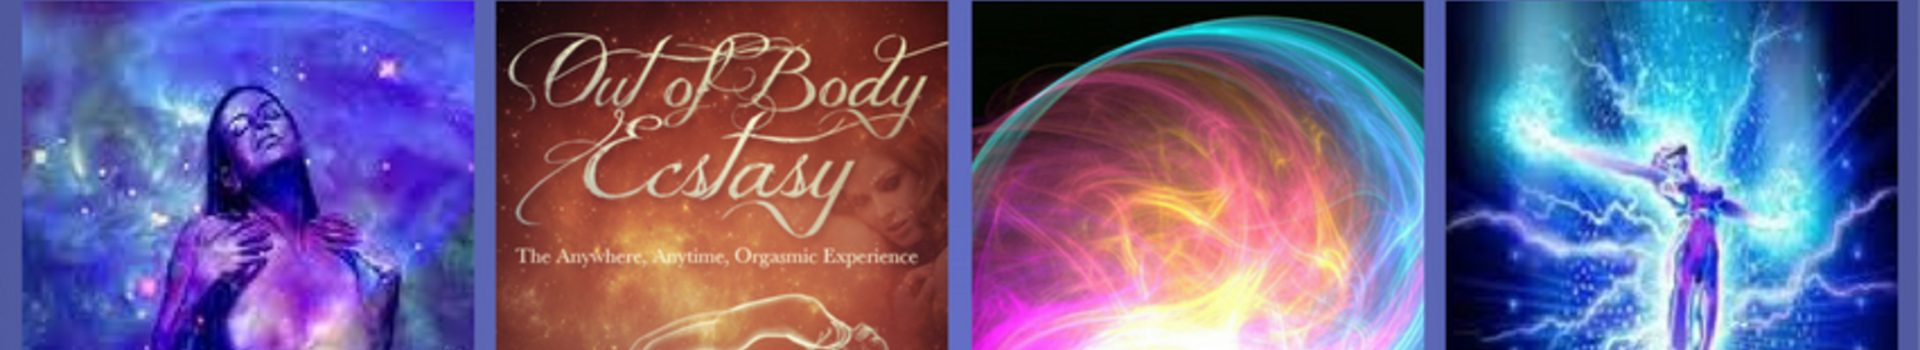 Welcome To The Out Of Body Ecstasy Sex Blog!